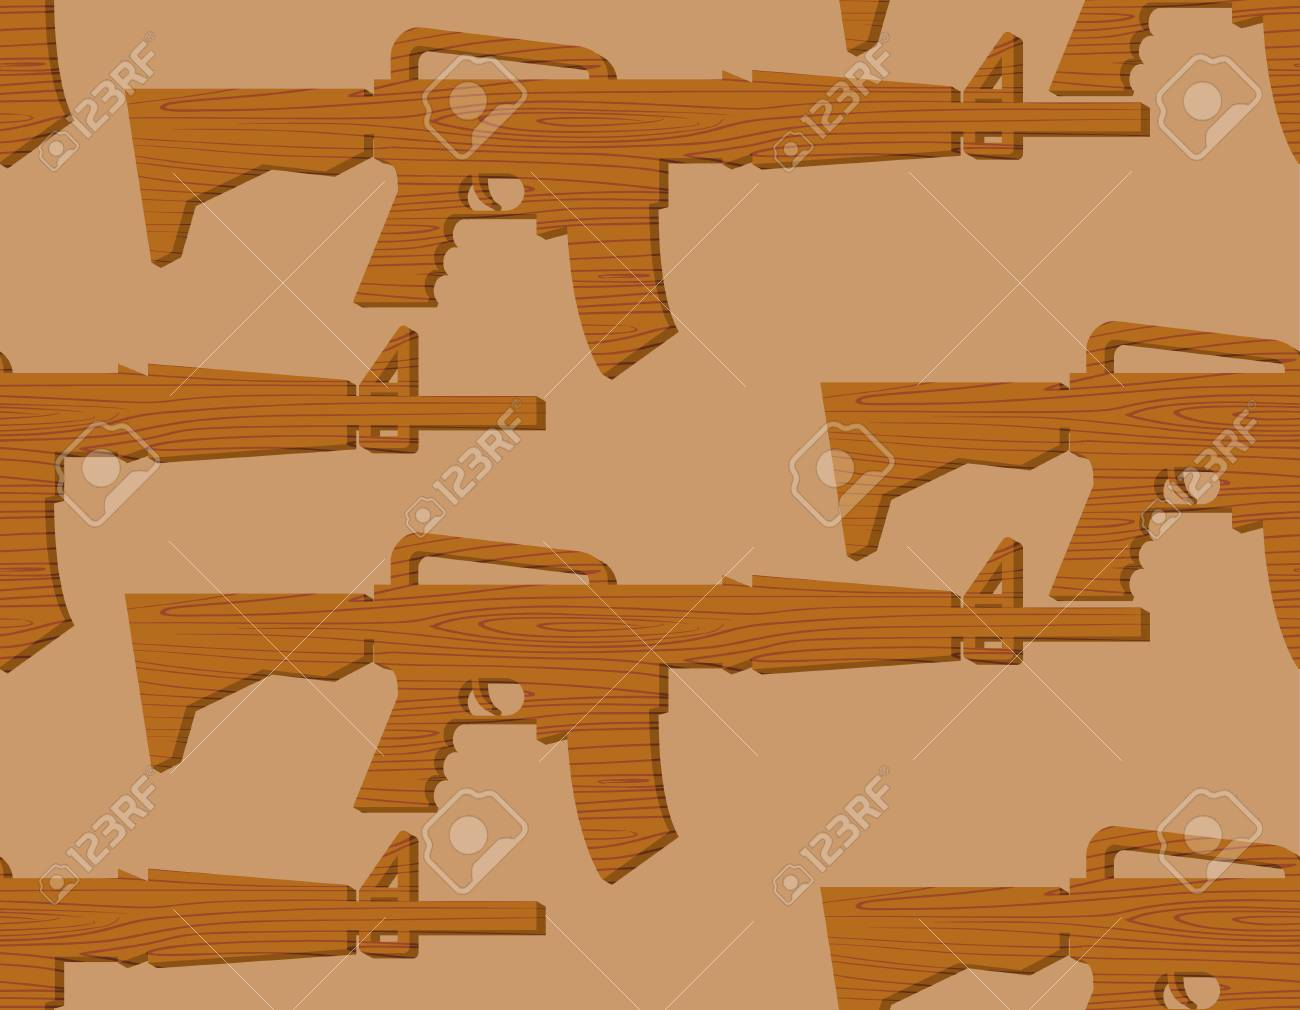 wooden gun kids pattern. board weapons background. childrens..